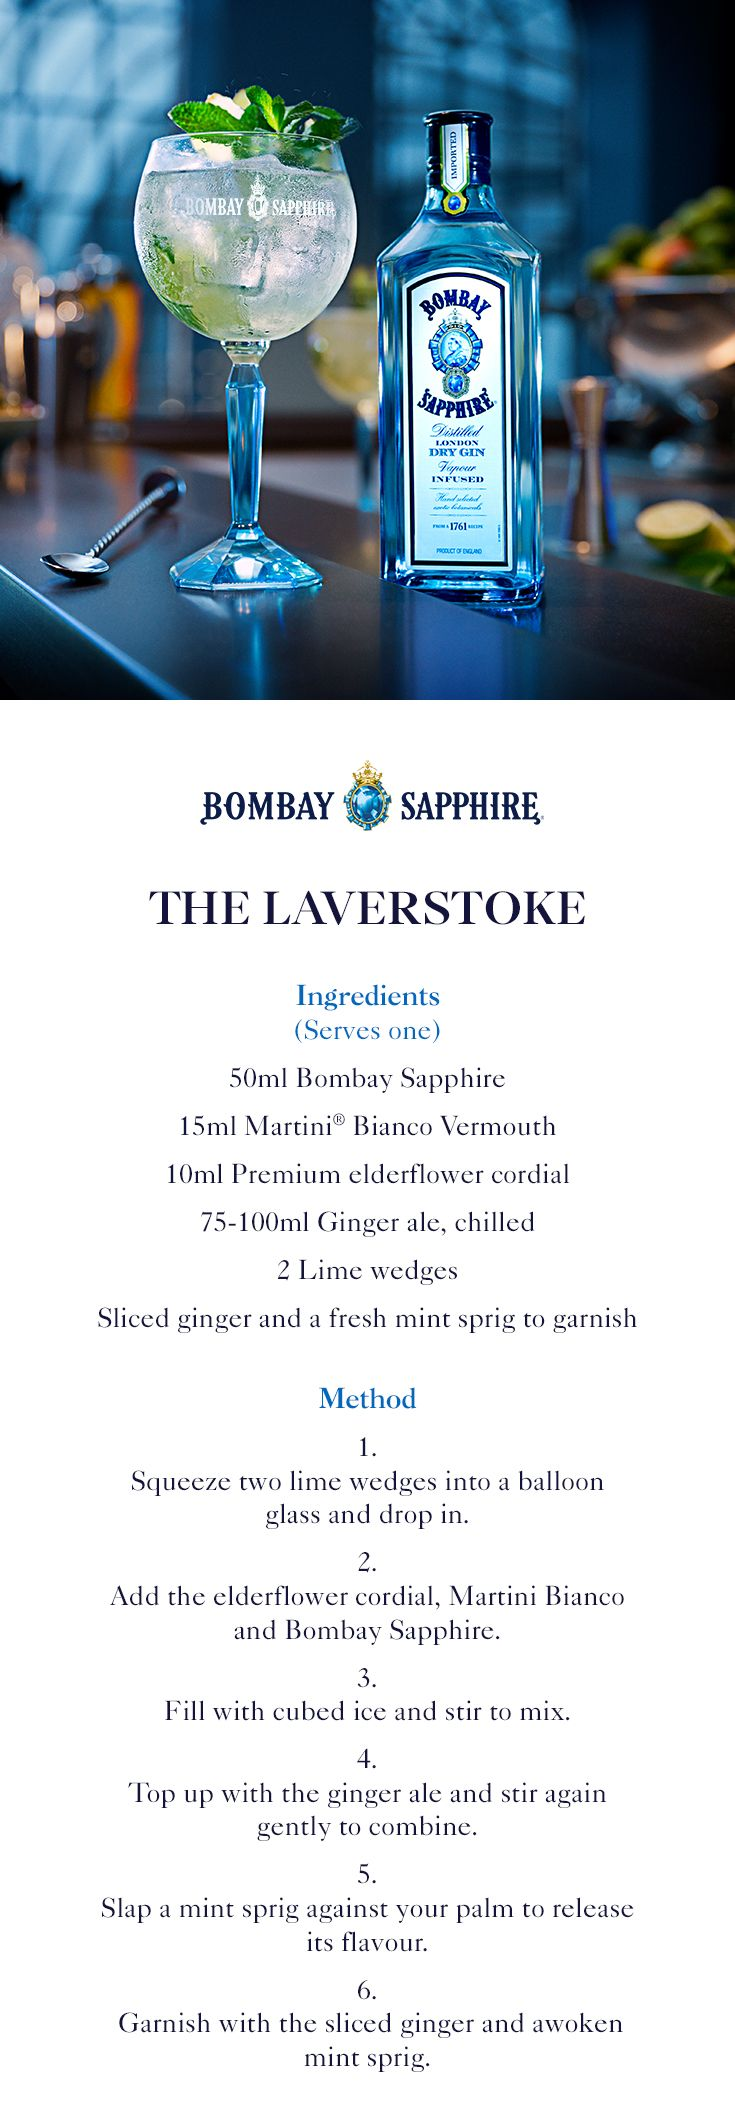 The Laverstoke   A step-by-step guide to creating Bombay Sapphire's signature cocktail – The Laverstoke. Proudly named after the unique distillery   50ml Bombay Sapphire   15ml Martini Bianco Vermouth   10ml Premium elderflower cordial   75-100ml Ginger ale, chilled   2 Lime wedges   Sliced ginger and a fresh mint sprig to garnish